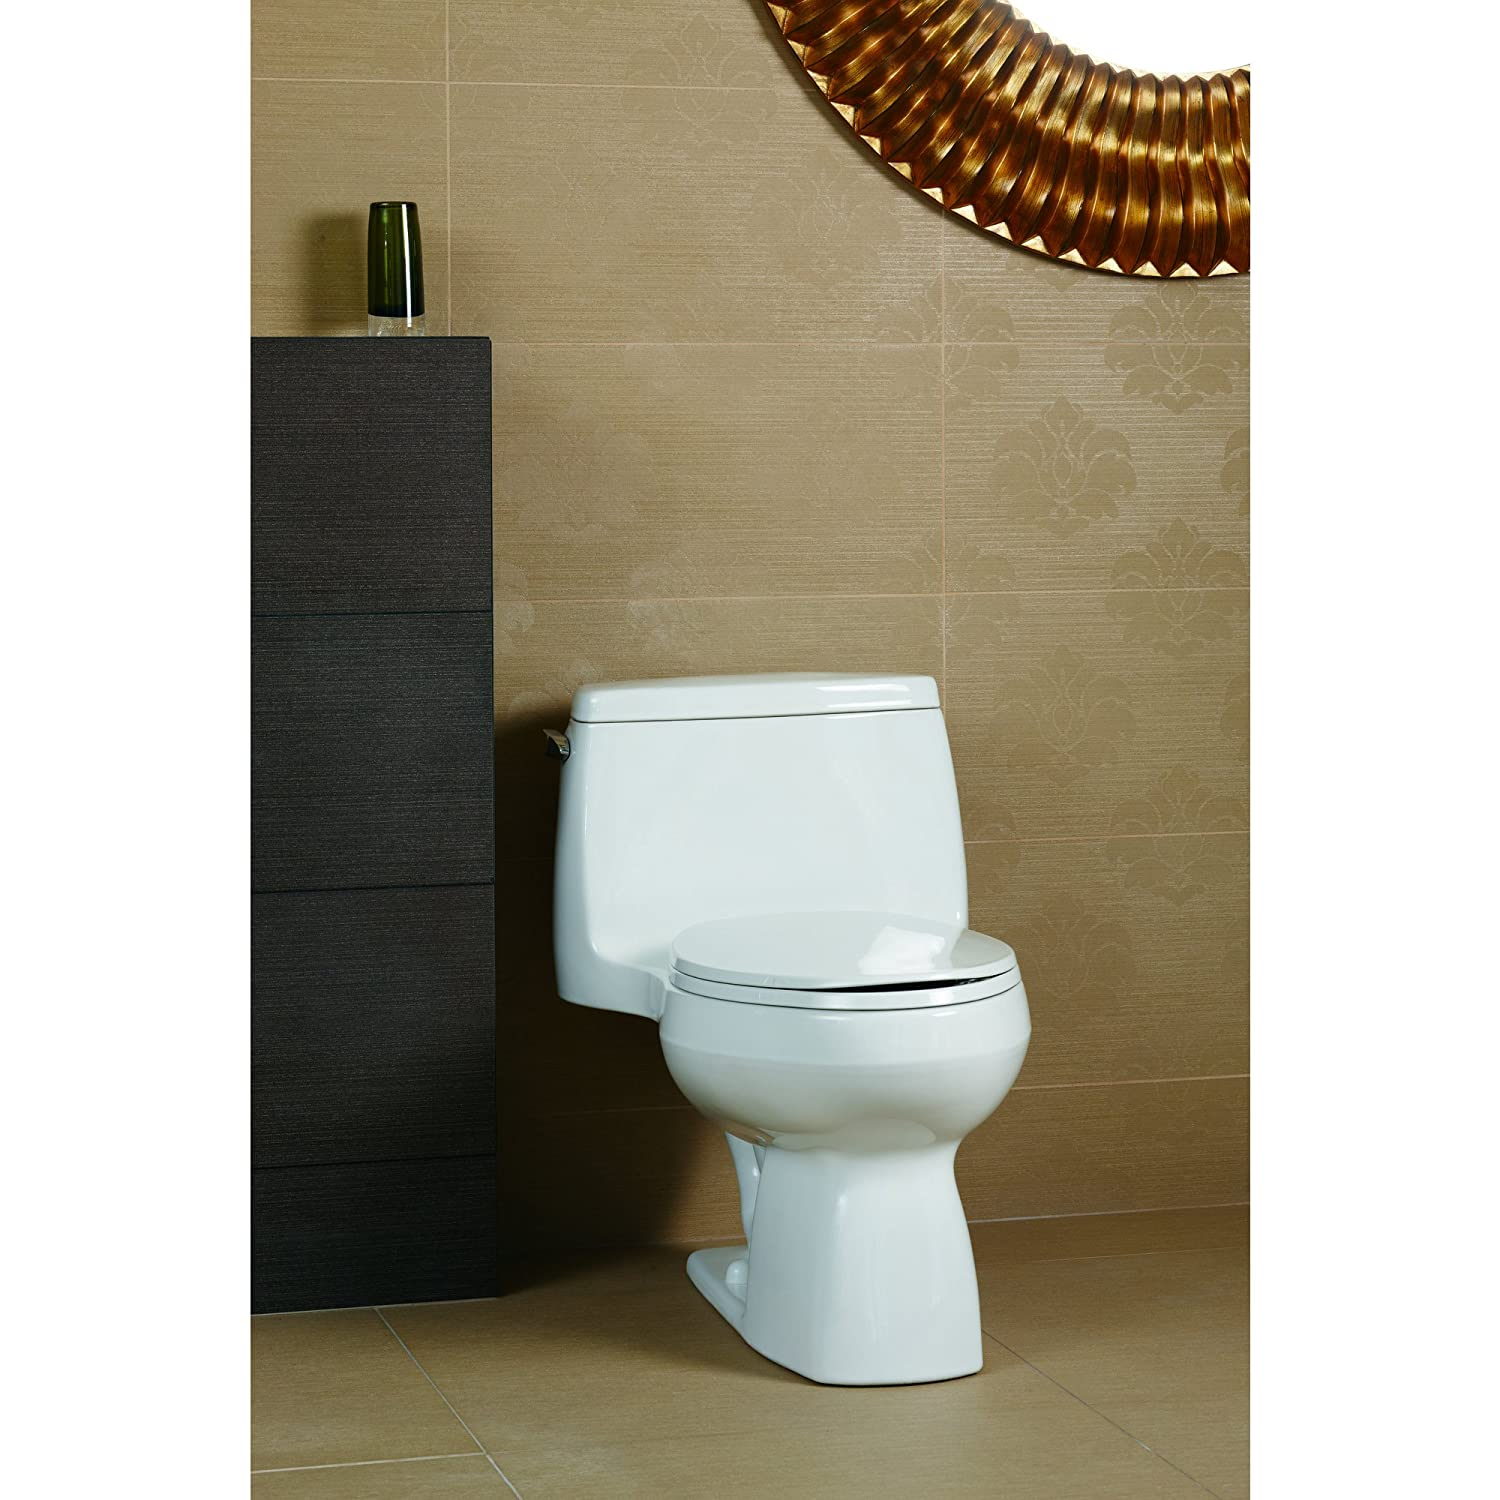 The benefits having a bathroom elongated toilet